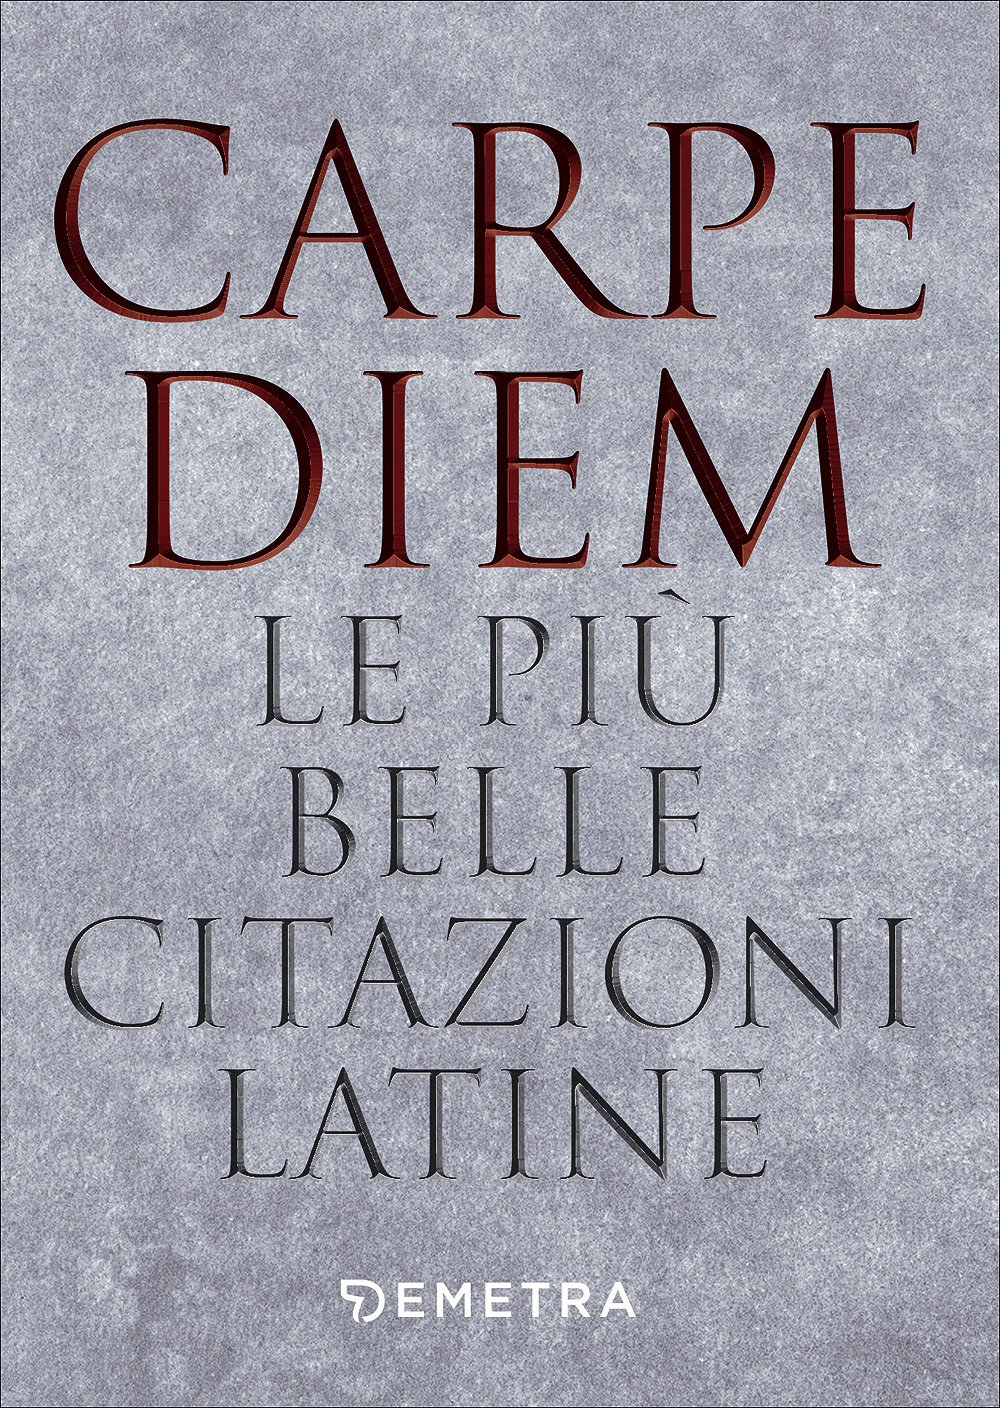 Amazon It Carpe Diem Le Piu Belle Citazioni Latine 1 Ion 1 0